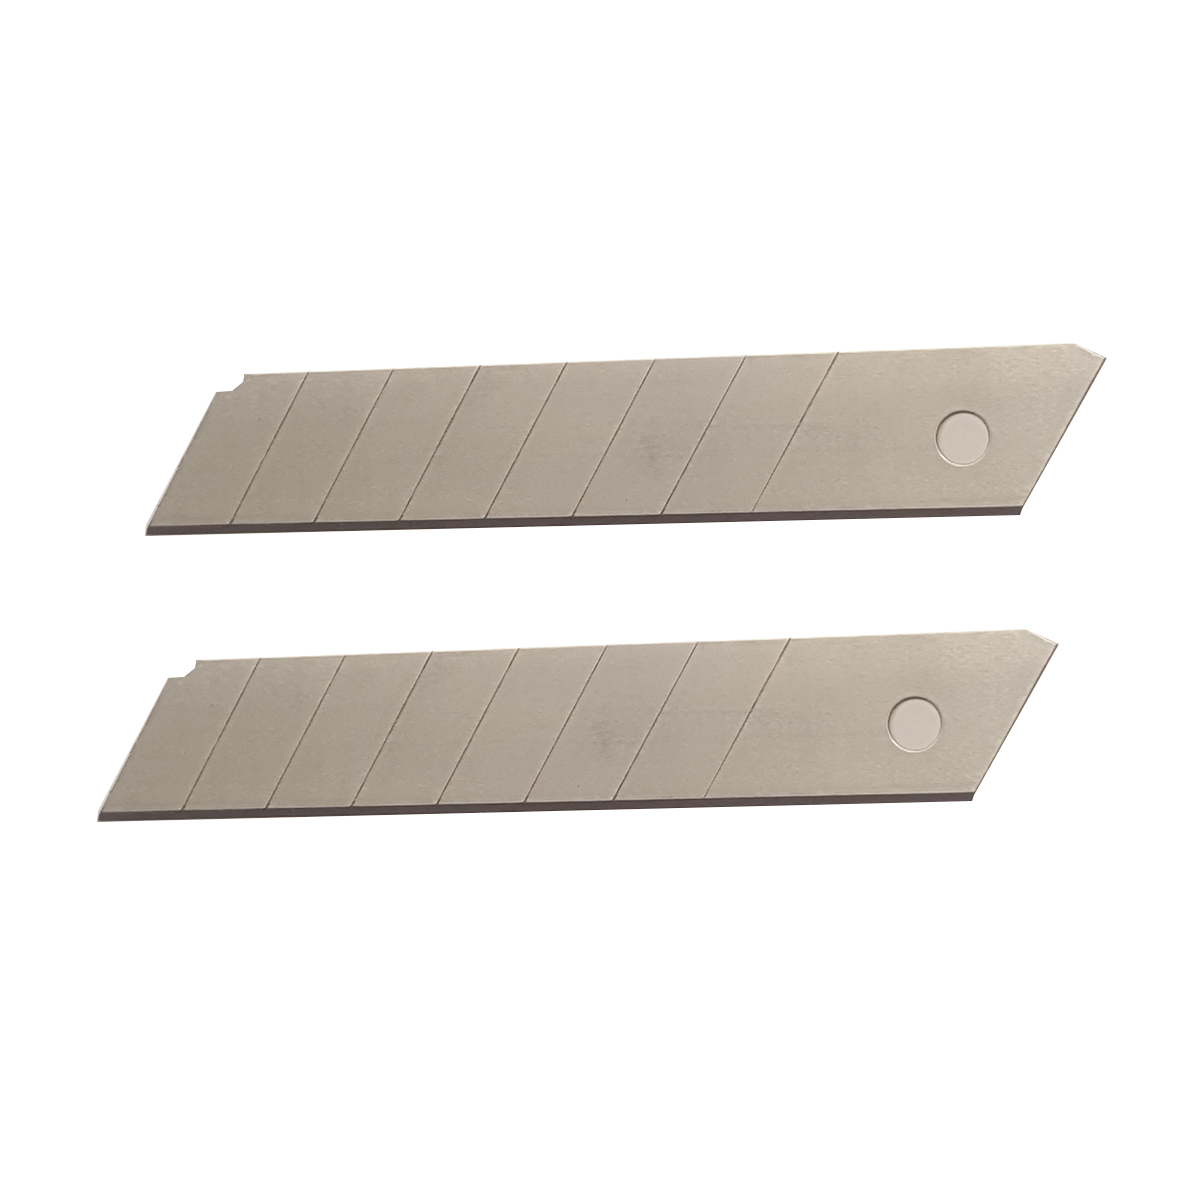 8 pt. Heavy Duty Snap Blade Replacement - 10 Pack - CUT-091471